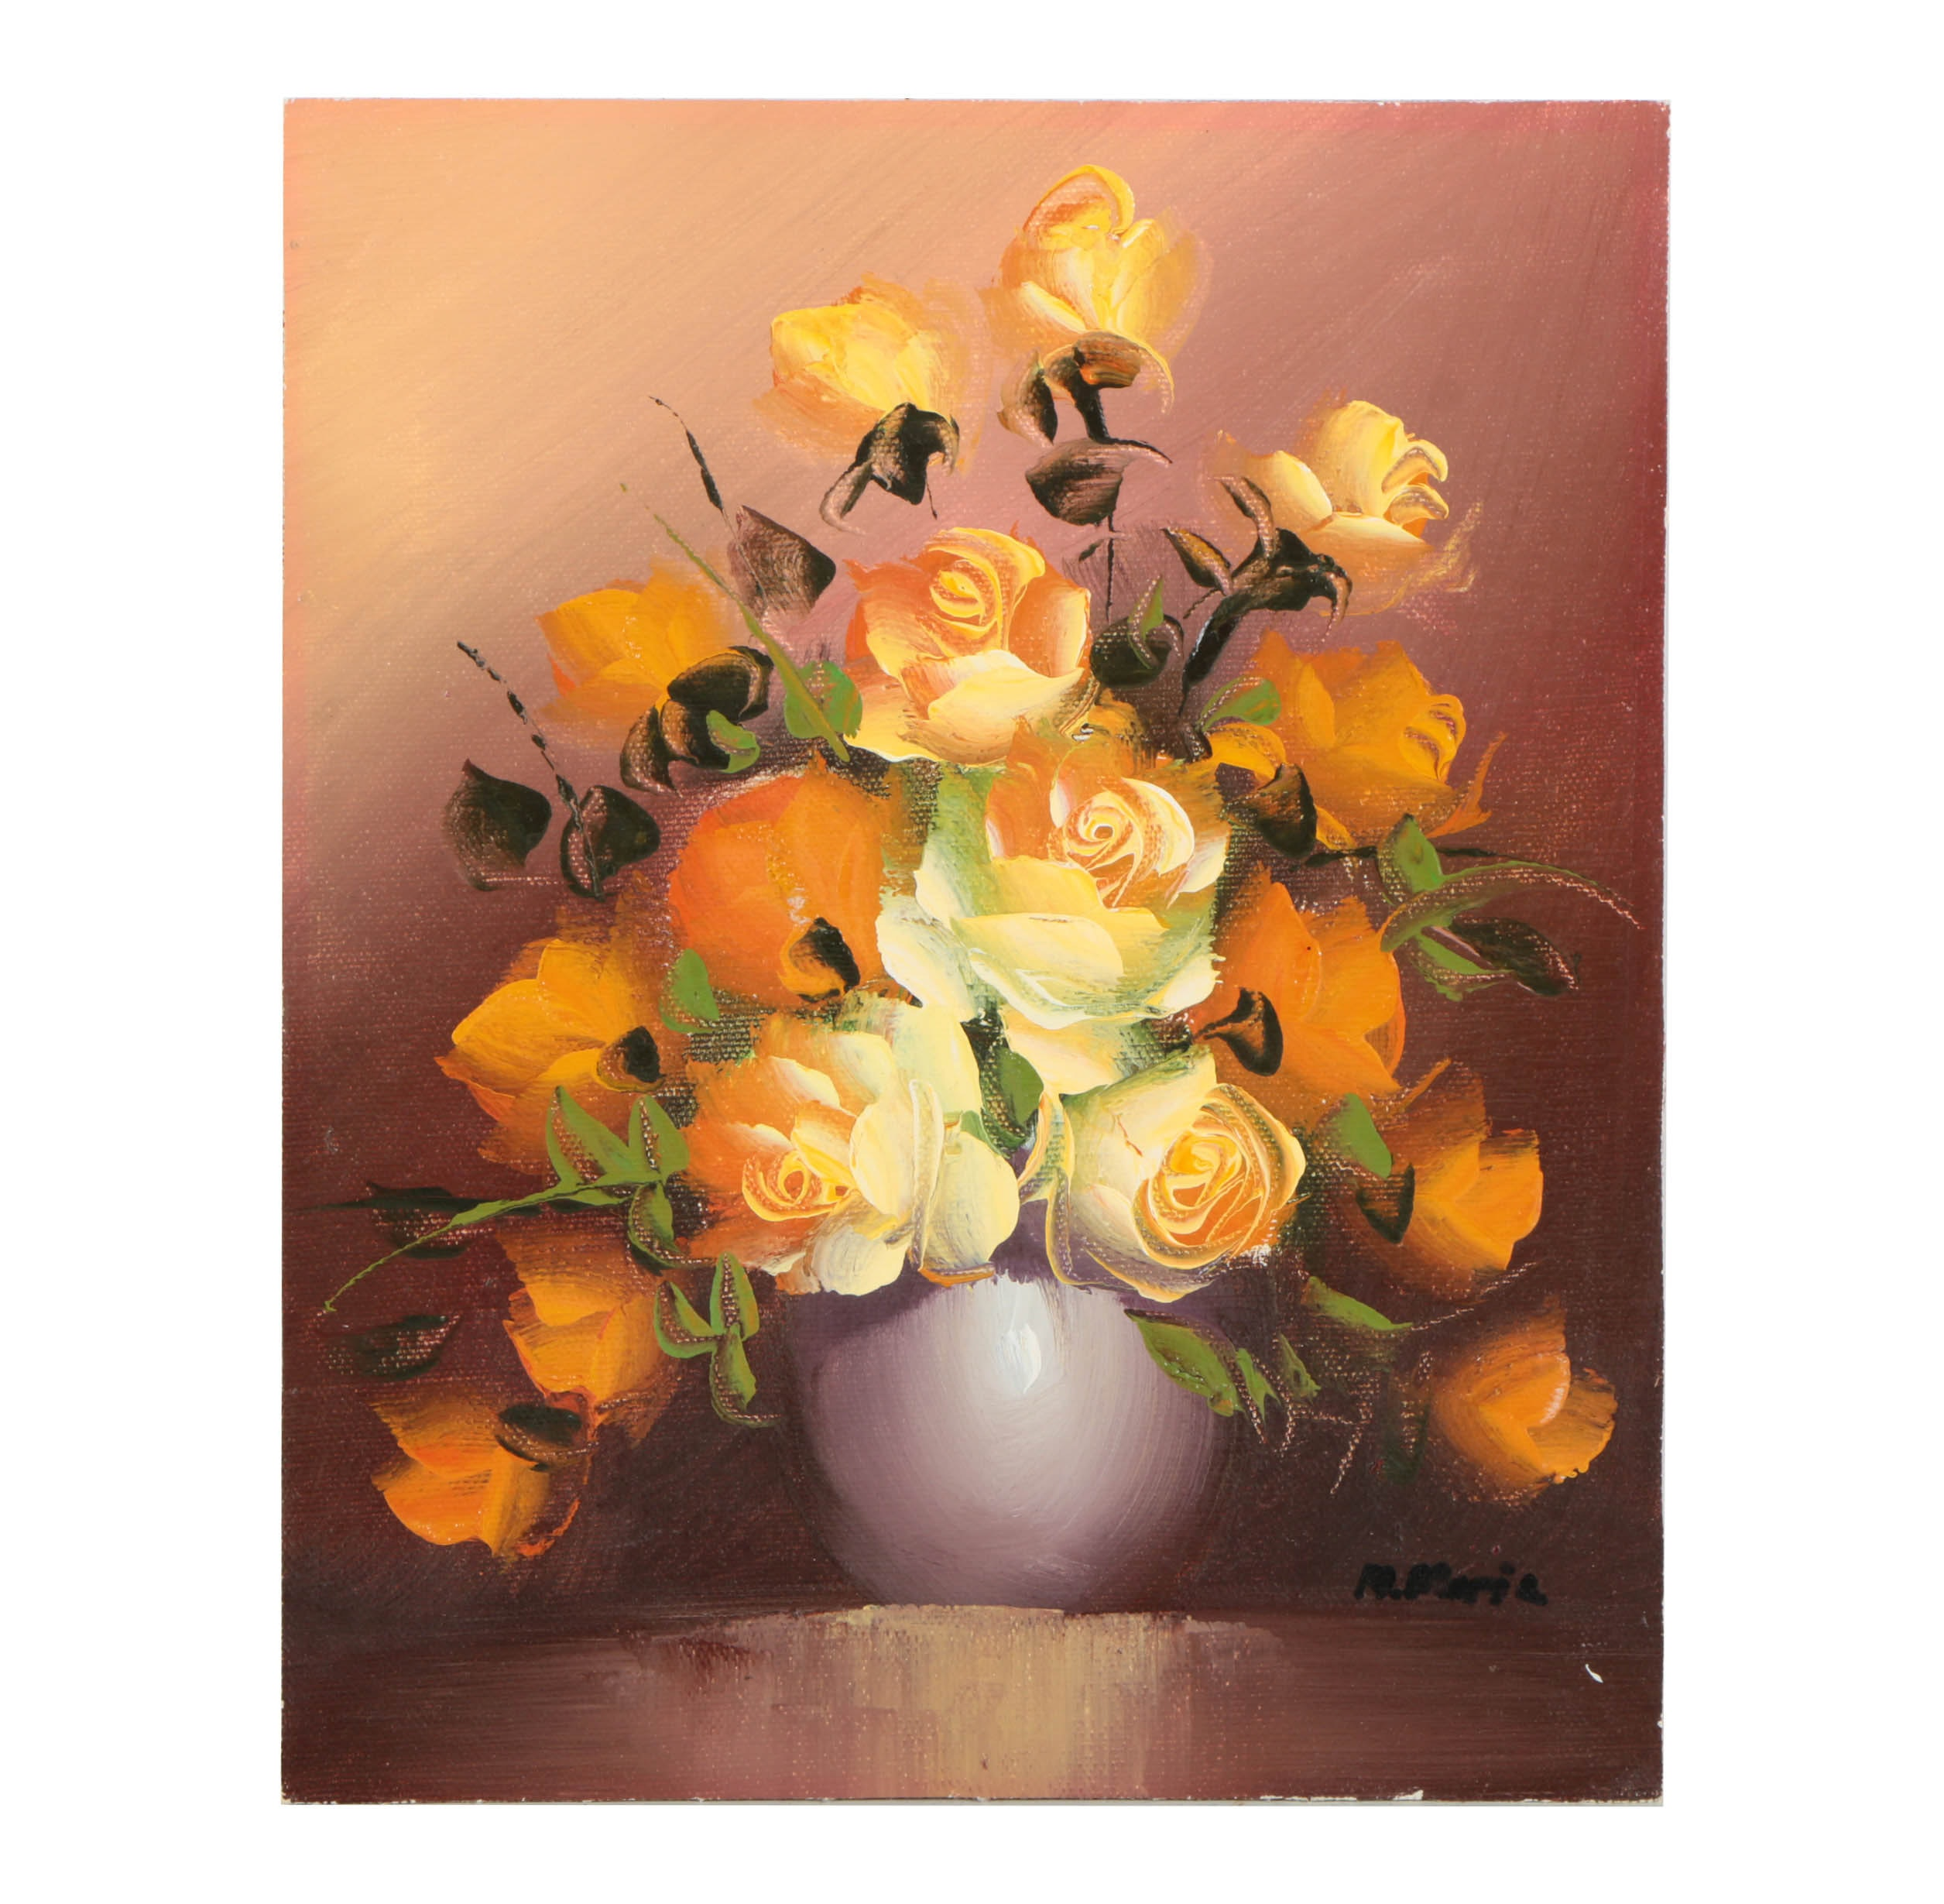 M. Maria Oil Painting on Canvas Floral Still Life